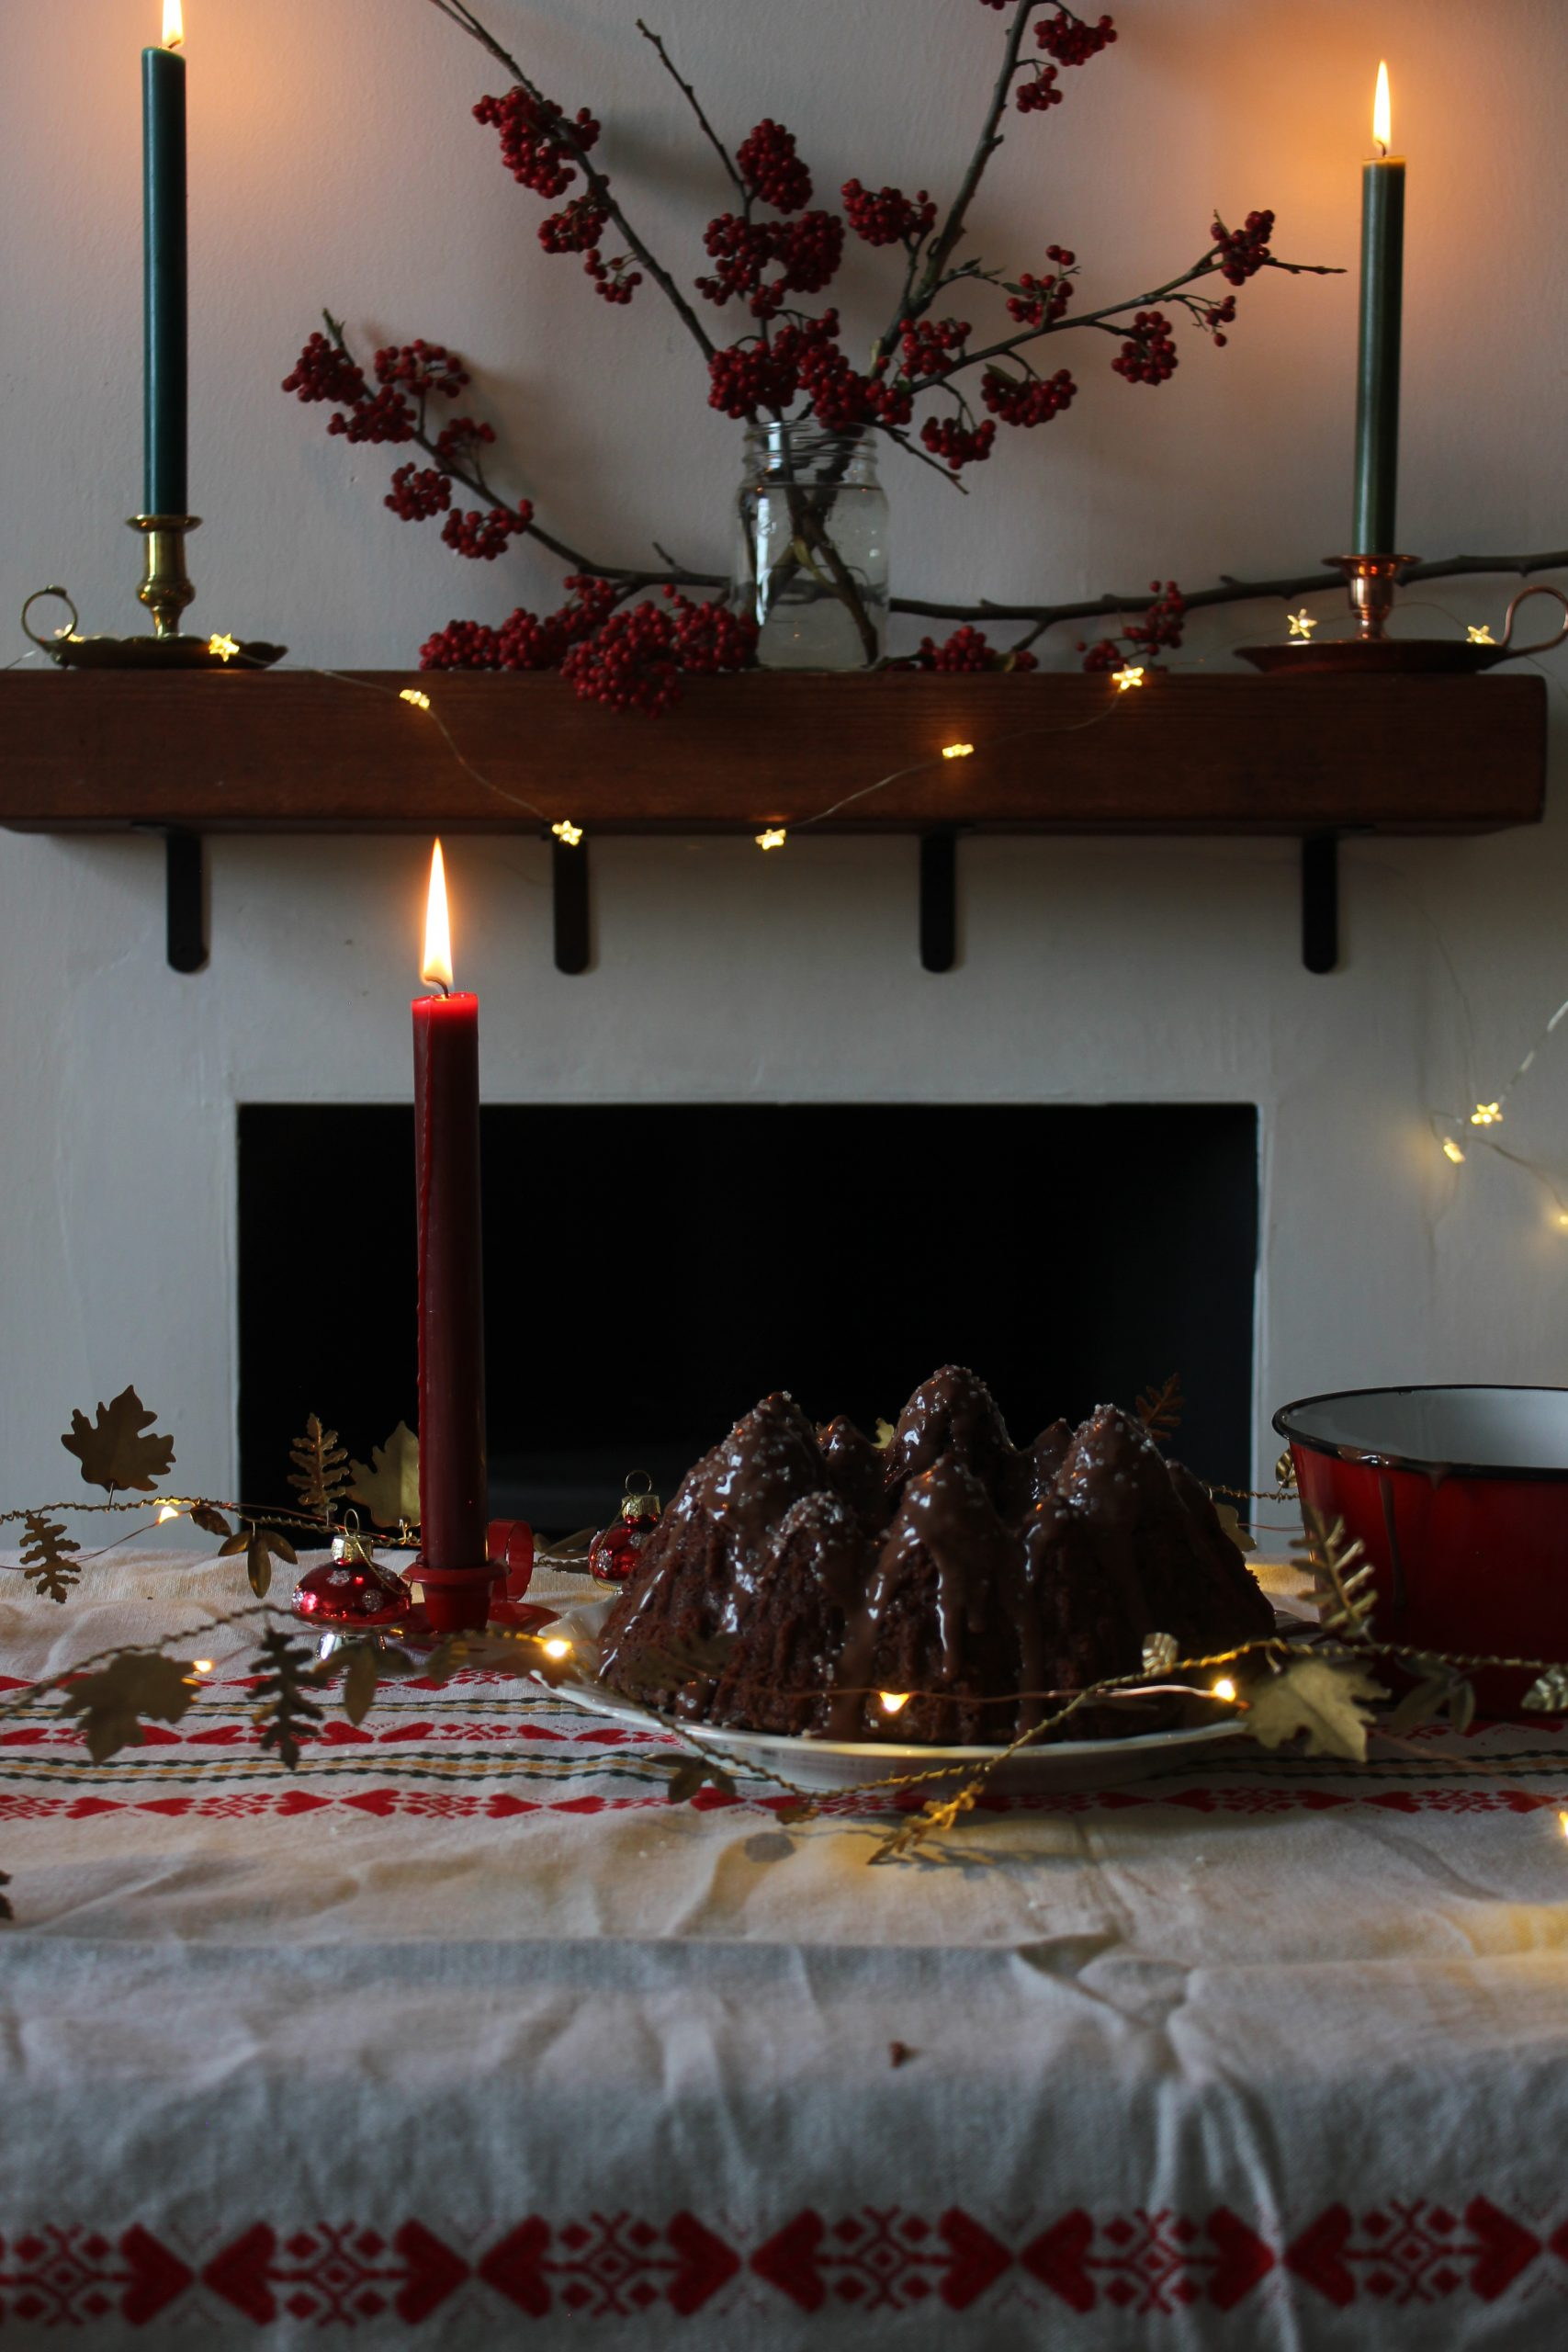 Chocolate peppermint bundt